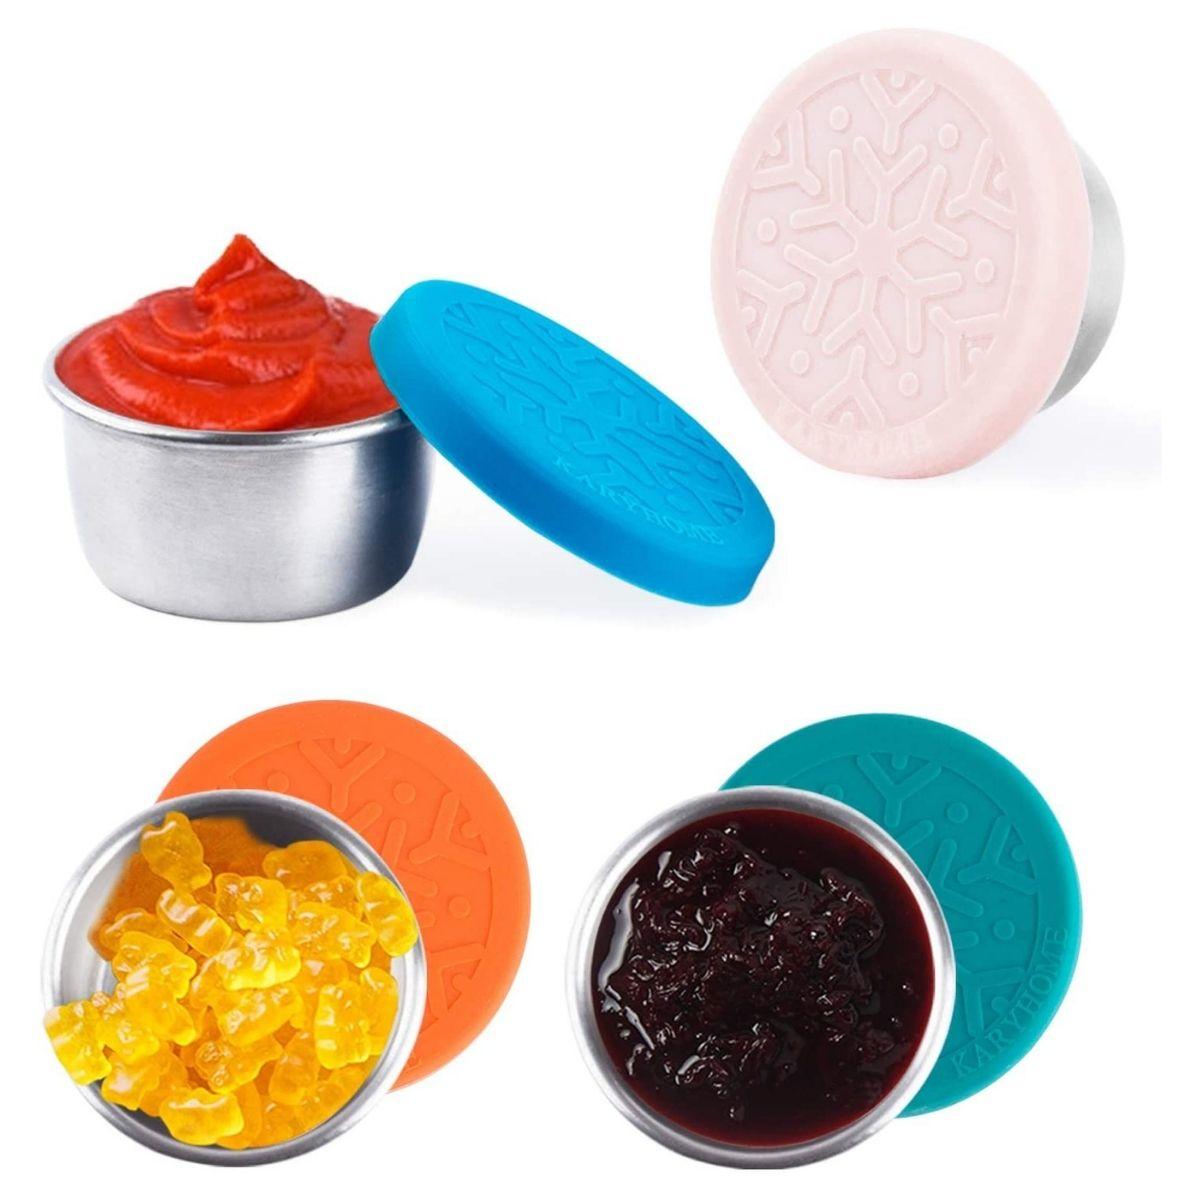 dressing containers